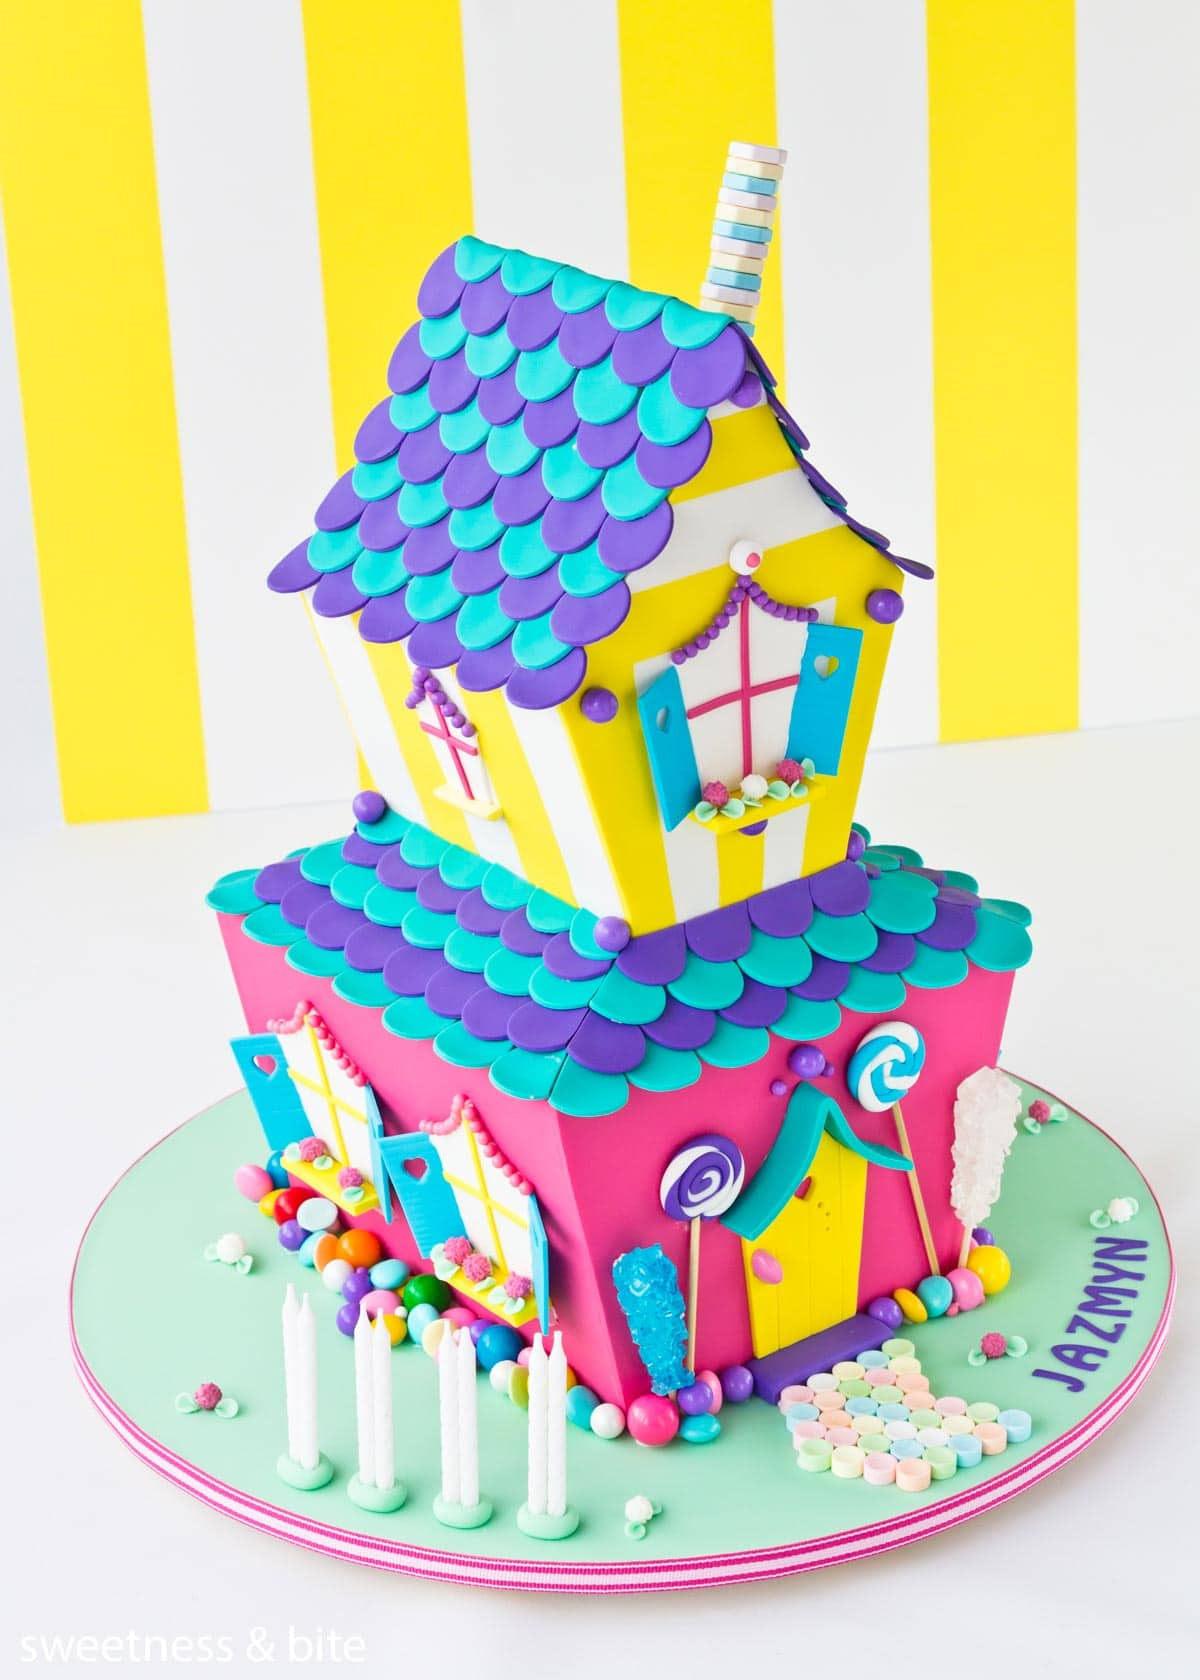 A brightly coloured two tier candy house cake.